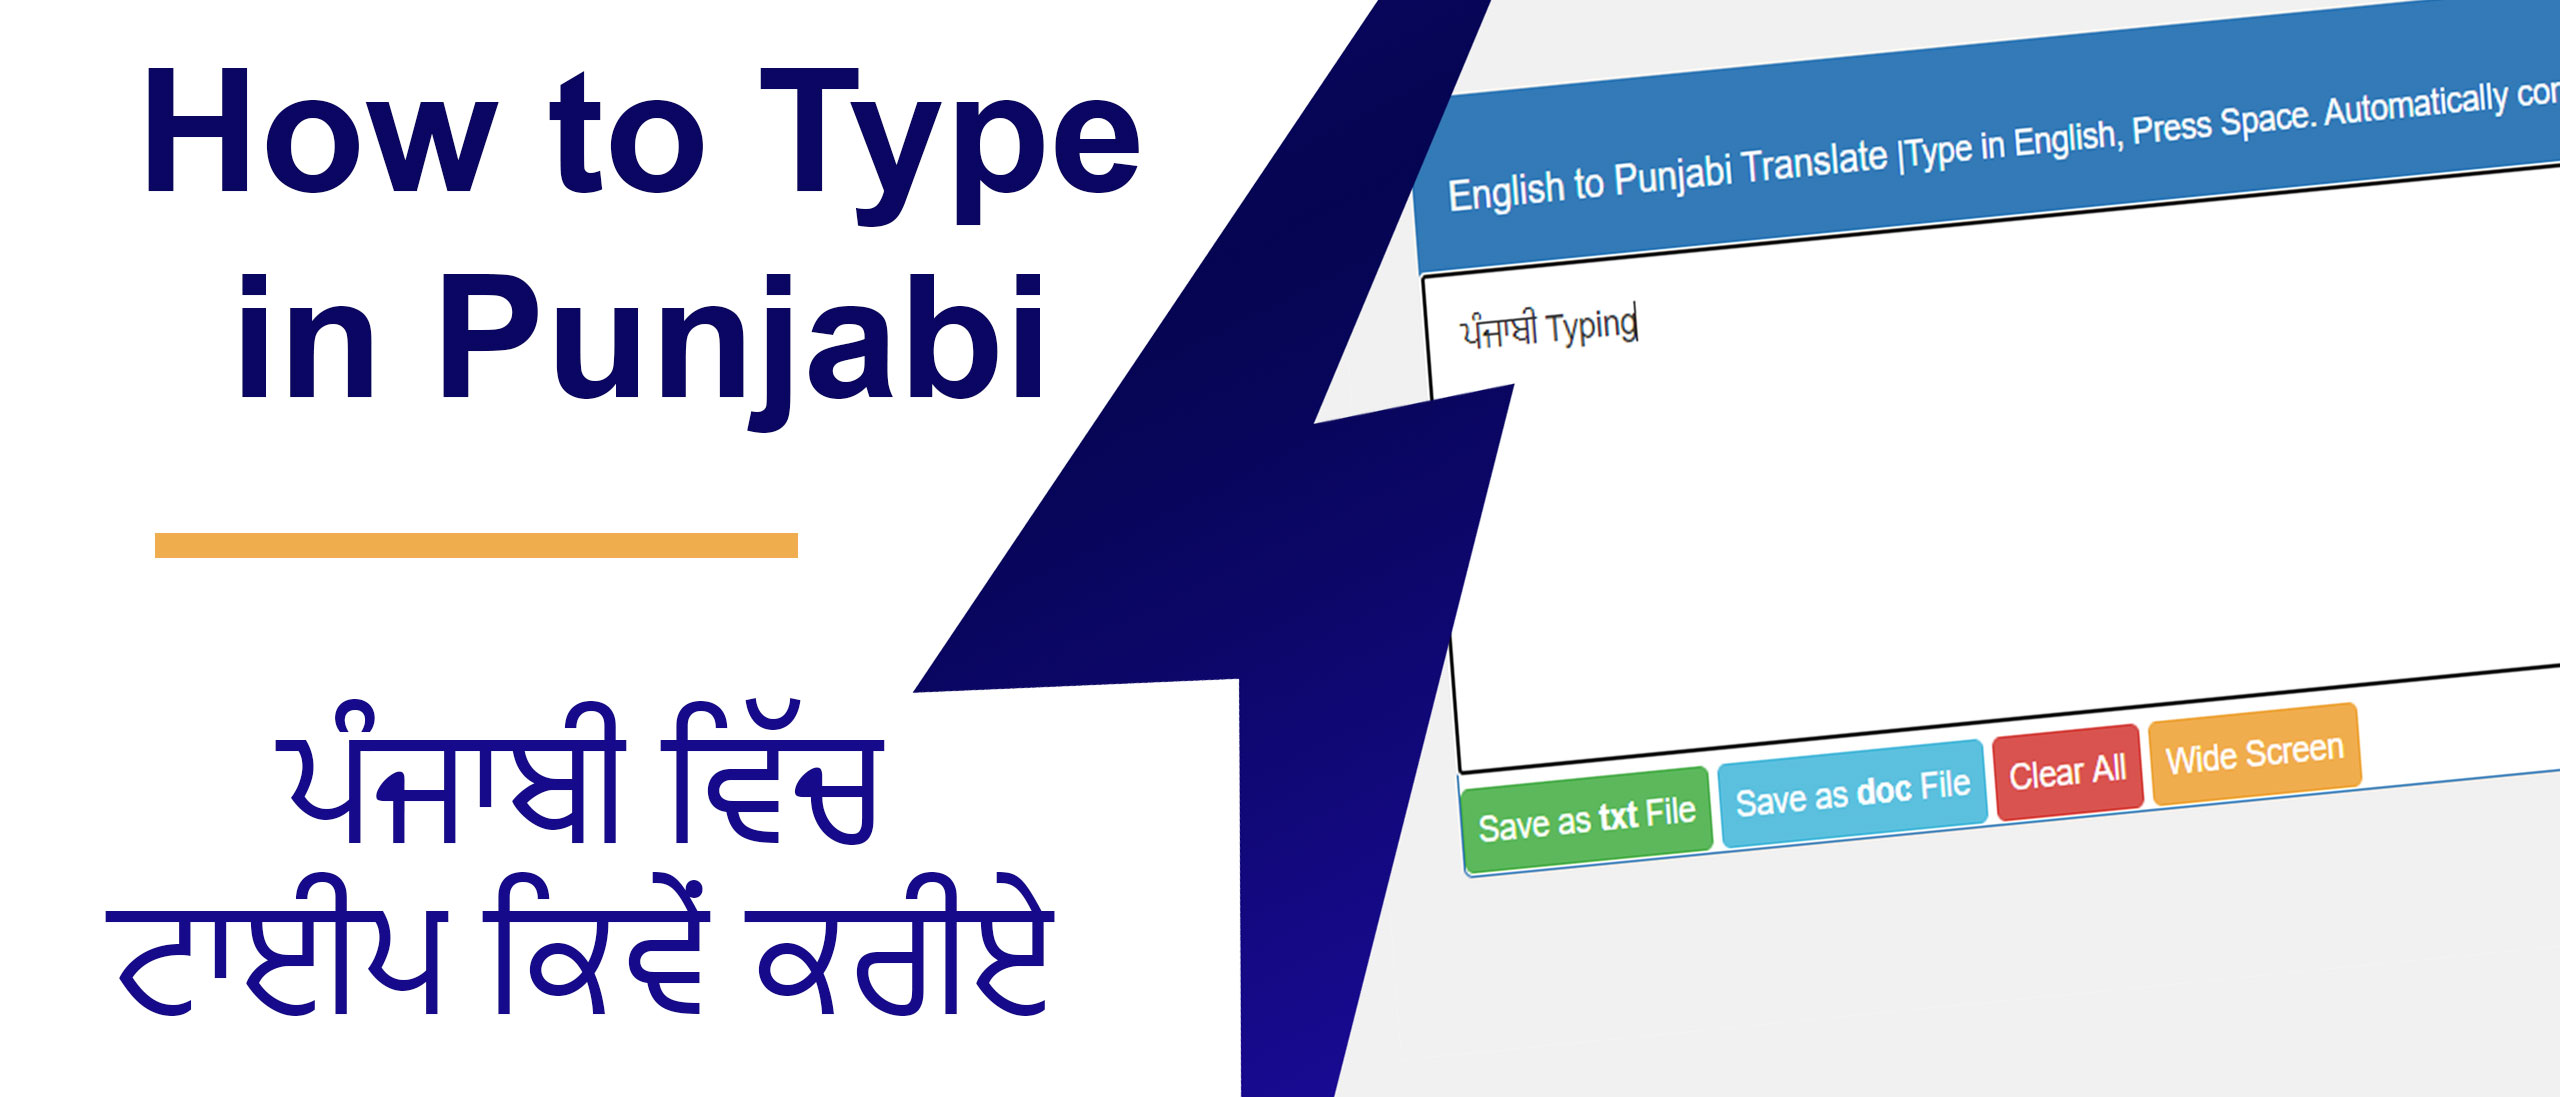 How to type in Punjabi | 2 methods to type in Punjabi